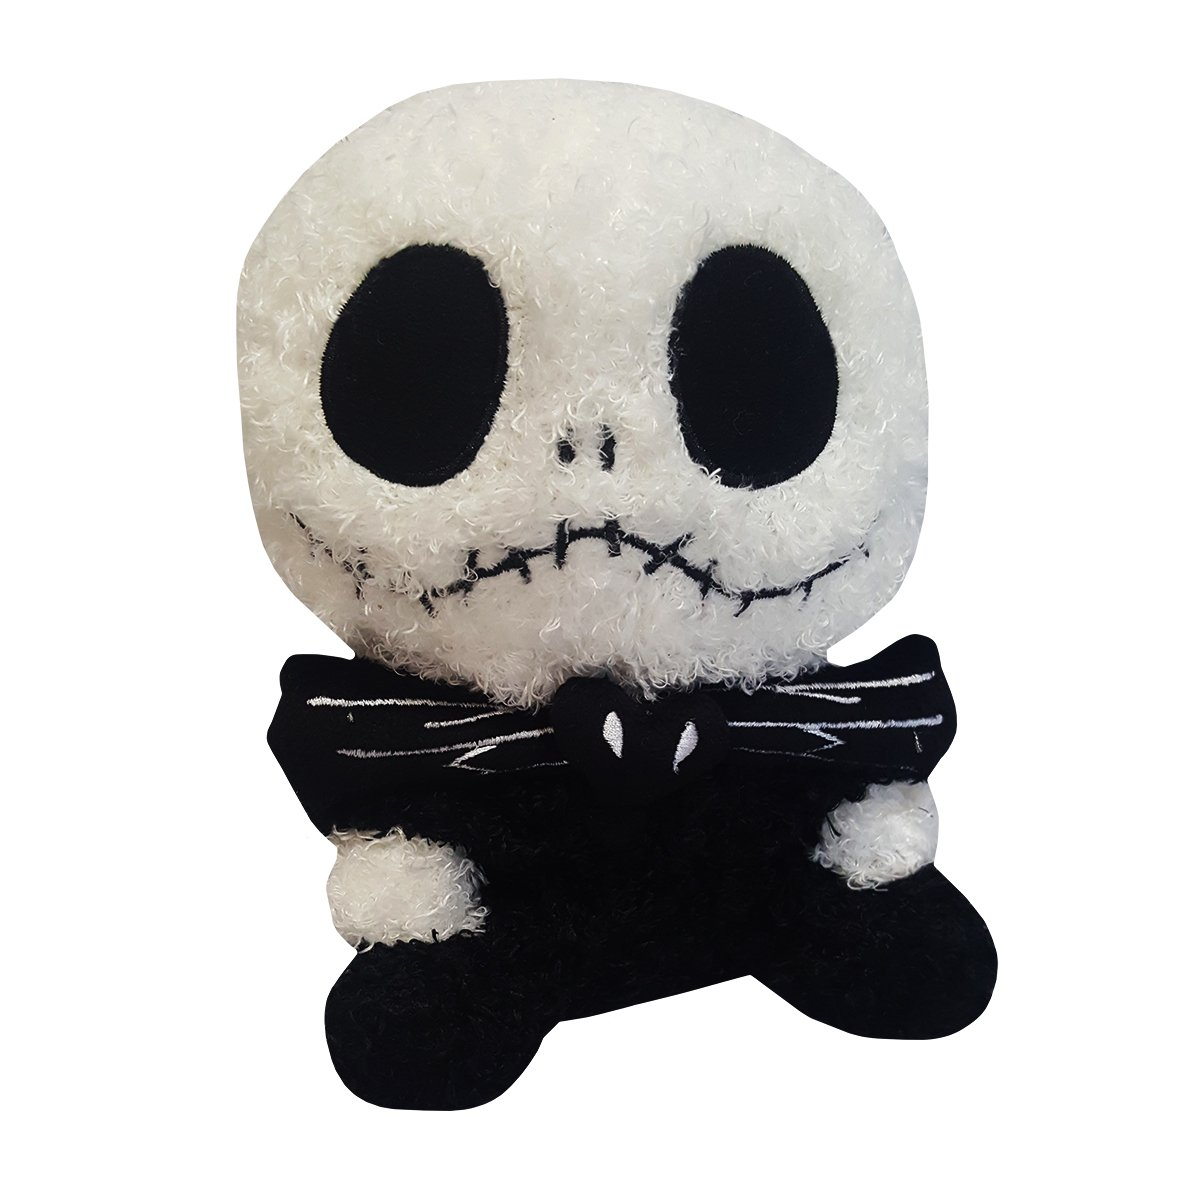 amazoncom disney parks baby jack skellington plush doll nightmare before christmas toys games